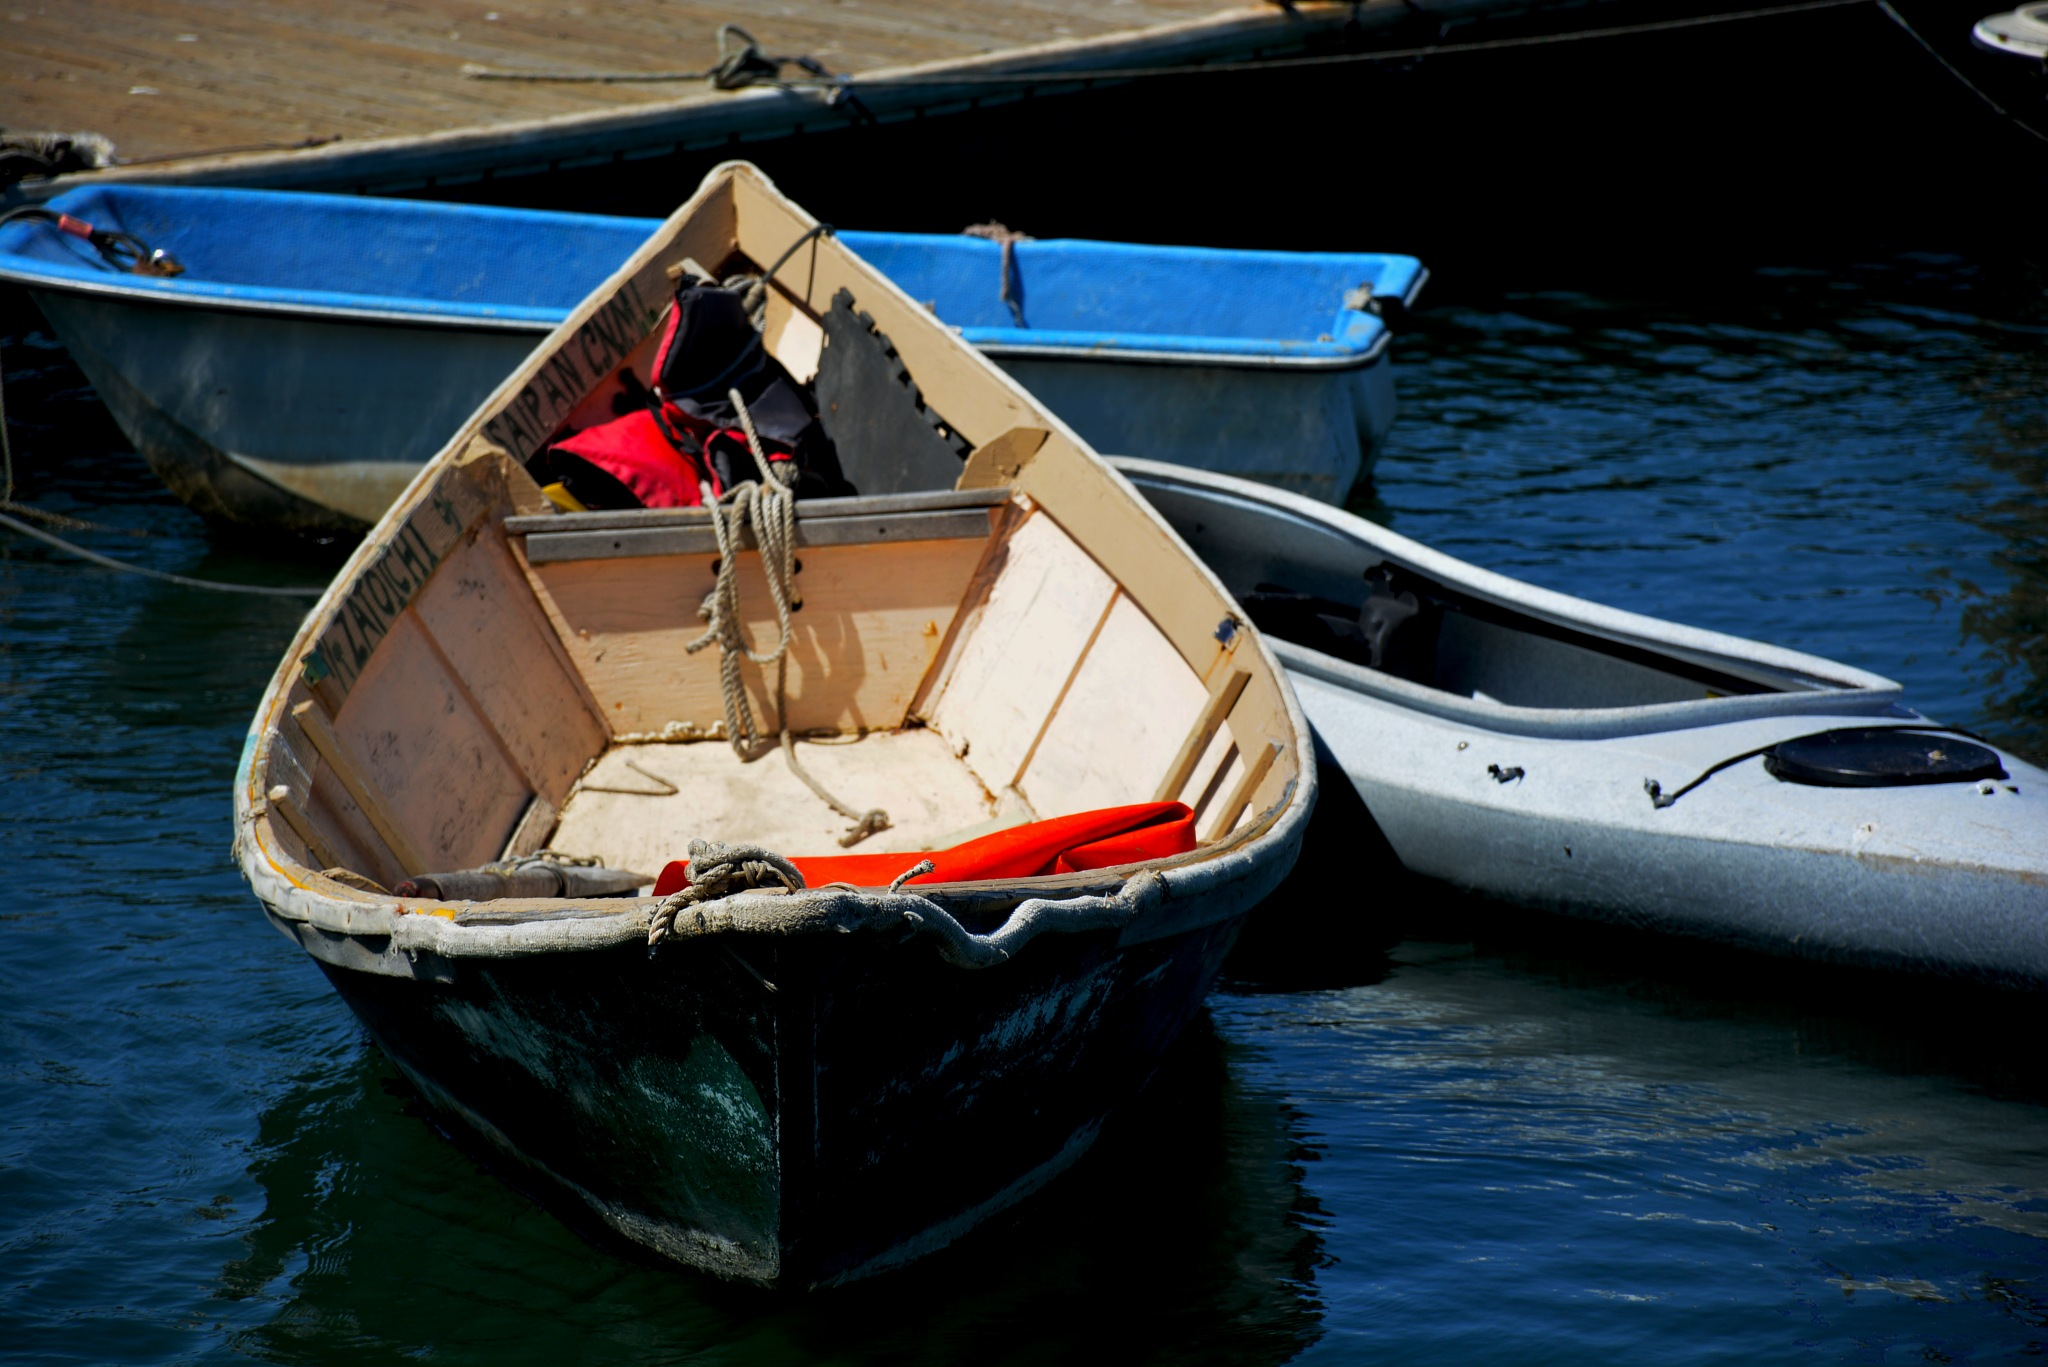 Three Boats by HKS Images